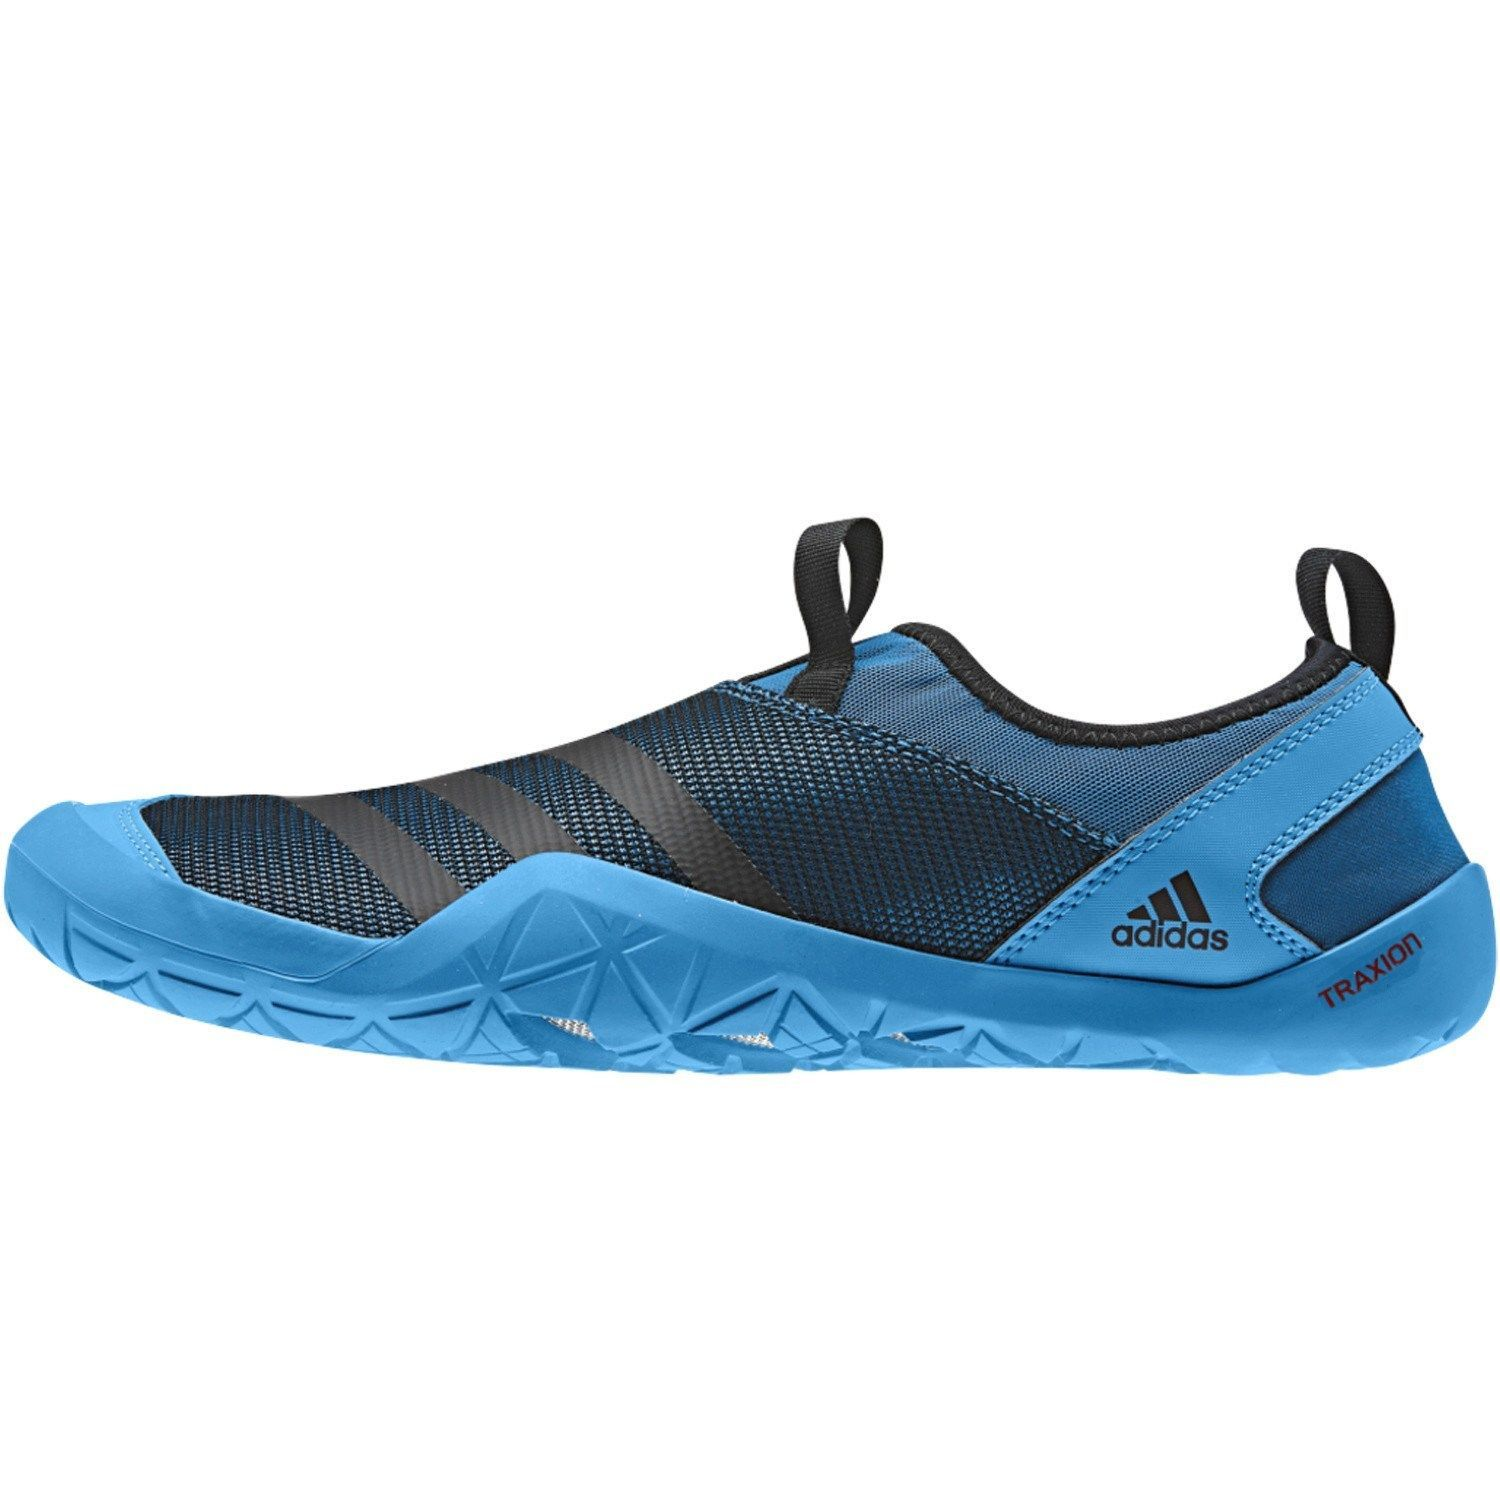 0c859d2b83dff adidas Performance Men s Climacool JawPaw Slip-On Shoe